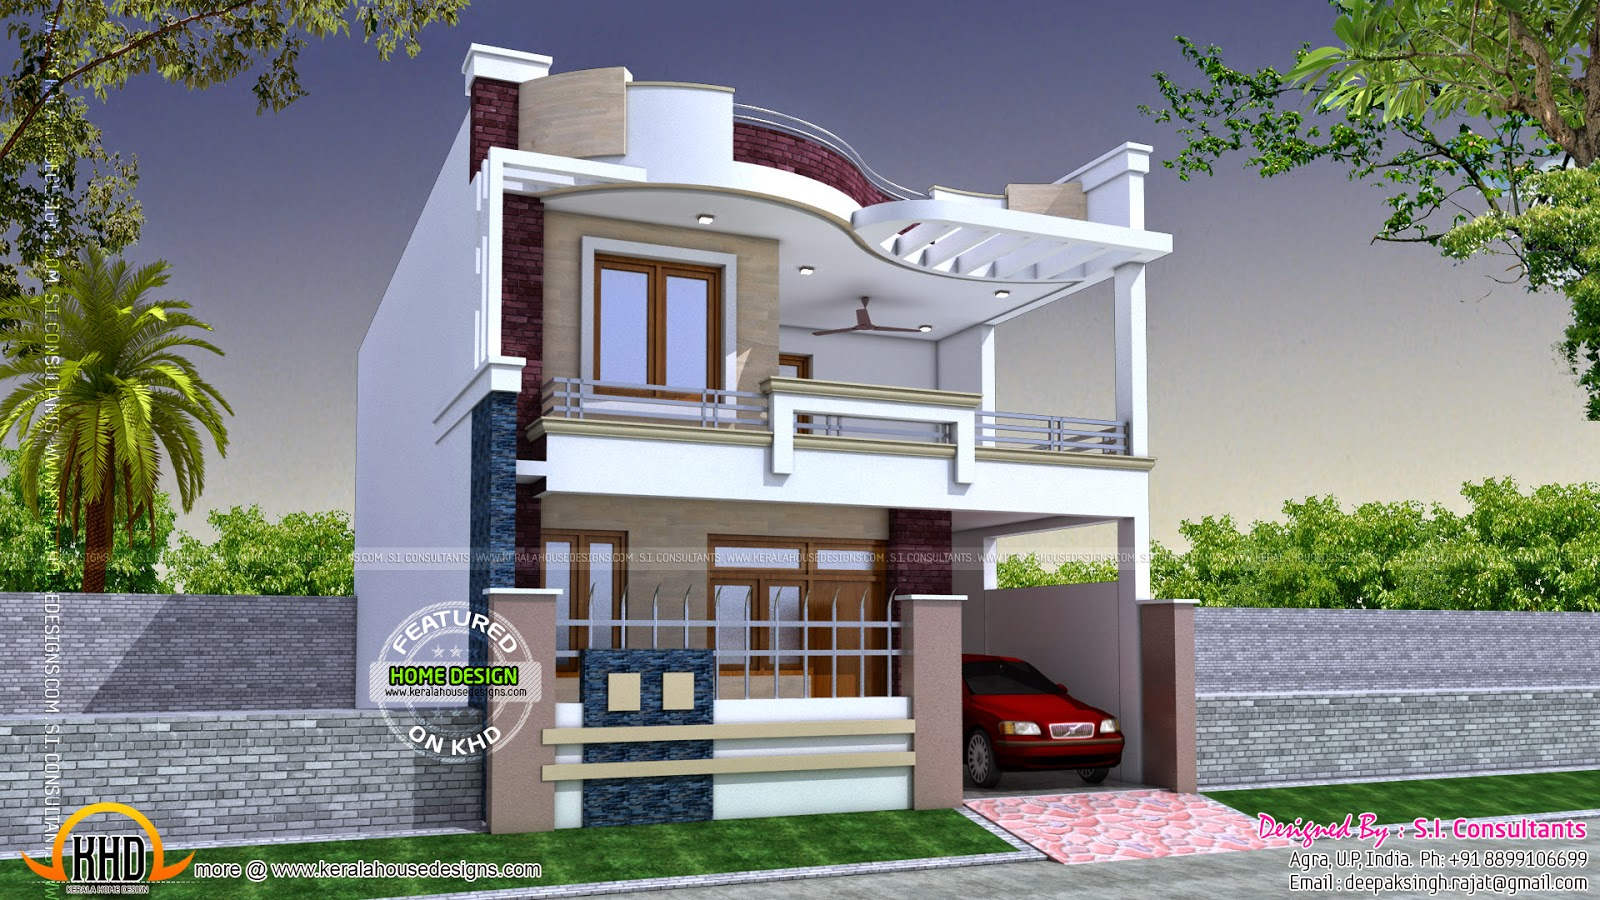 Modern indian home design kerala home design and floor plans for House plans indian style